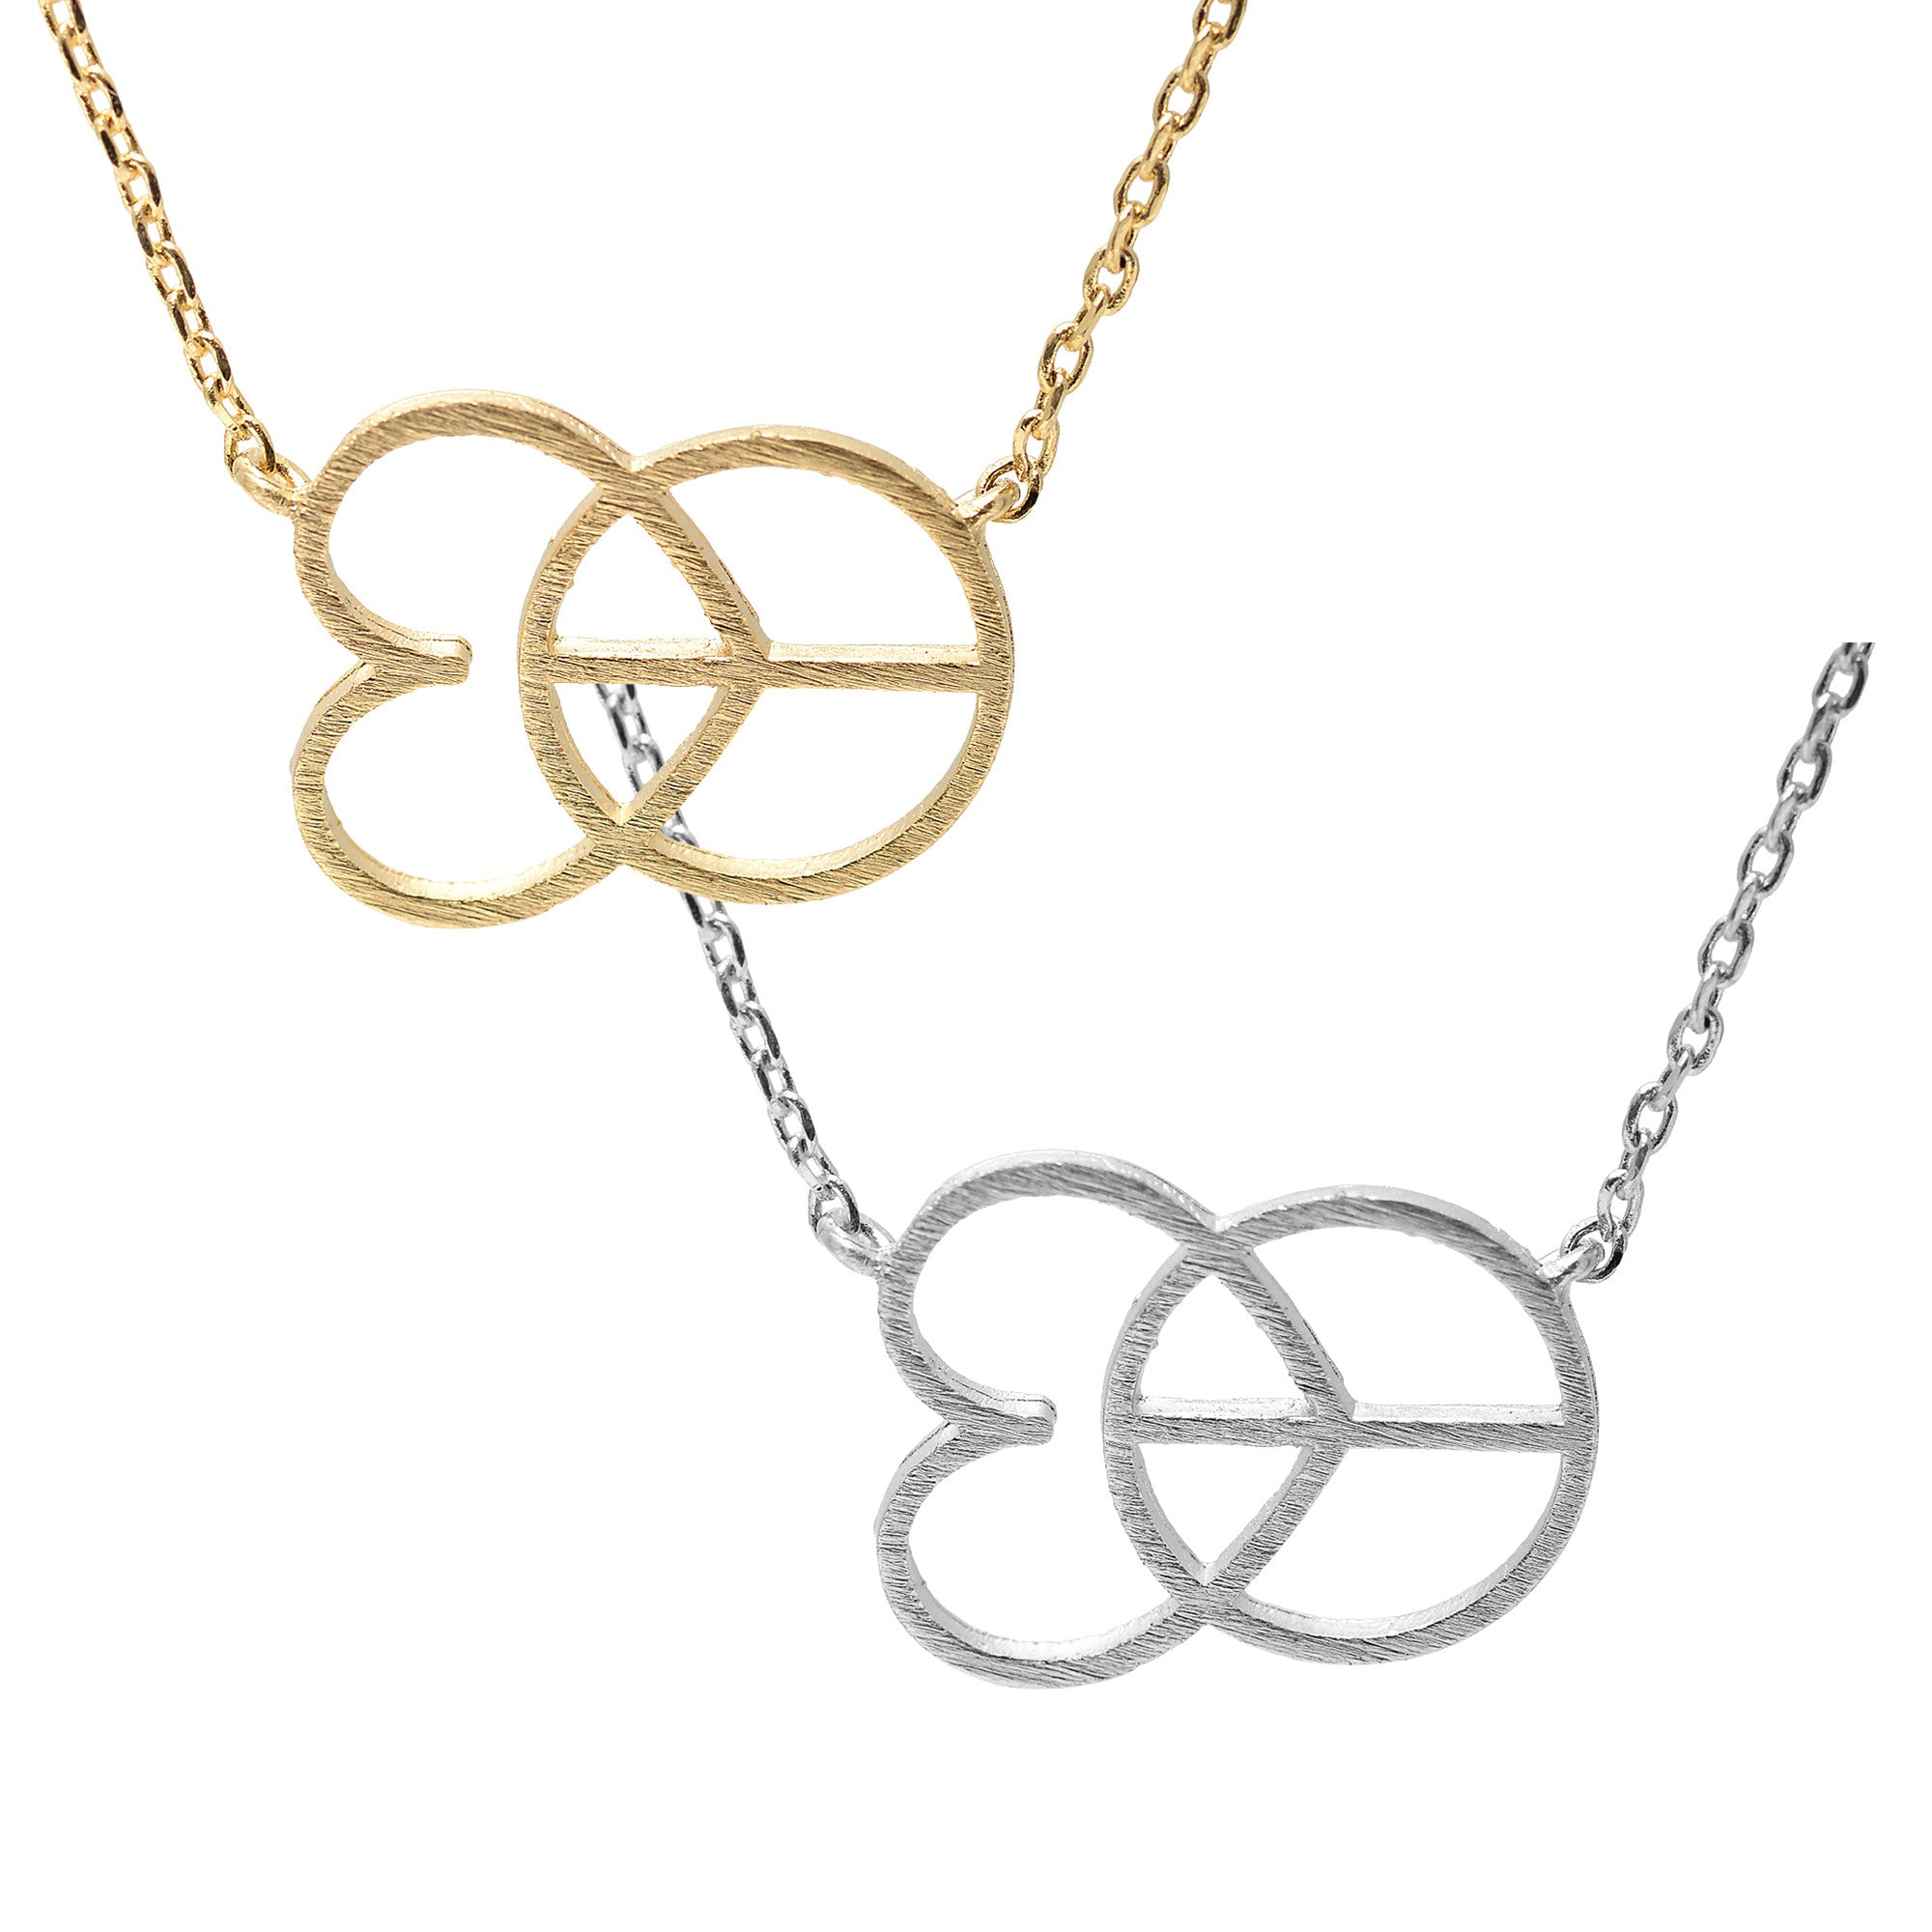 necklace necessities web pendant products peace back gold mindful breathe mini being